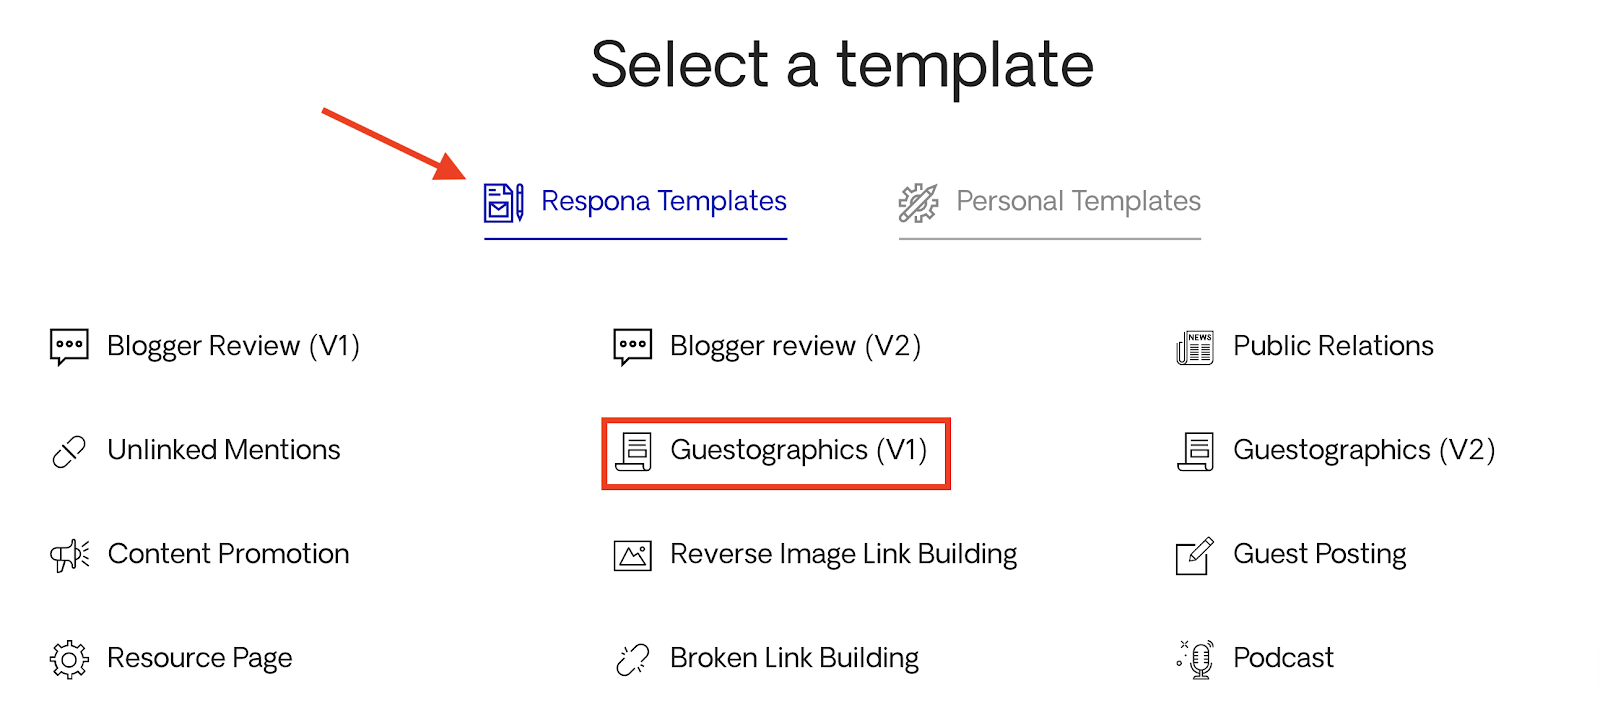 Selecting a template for content distribution